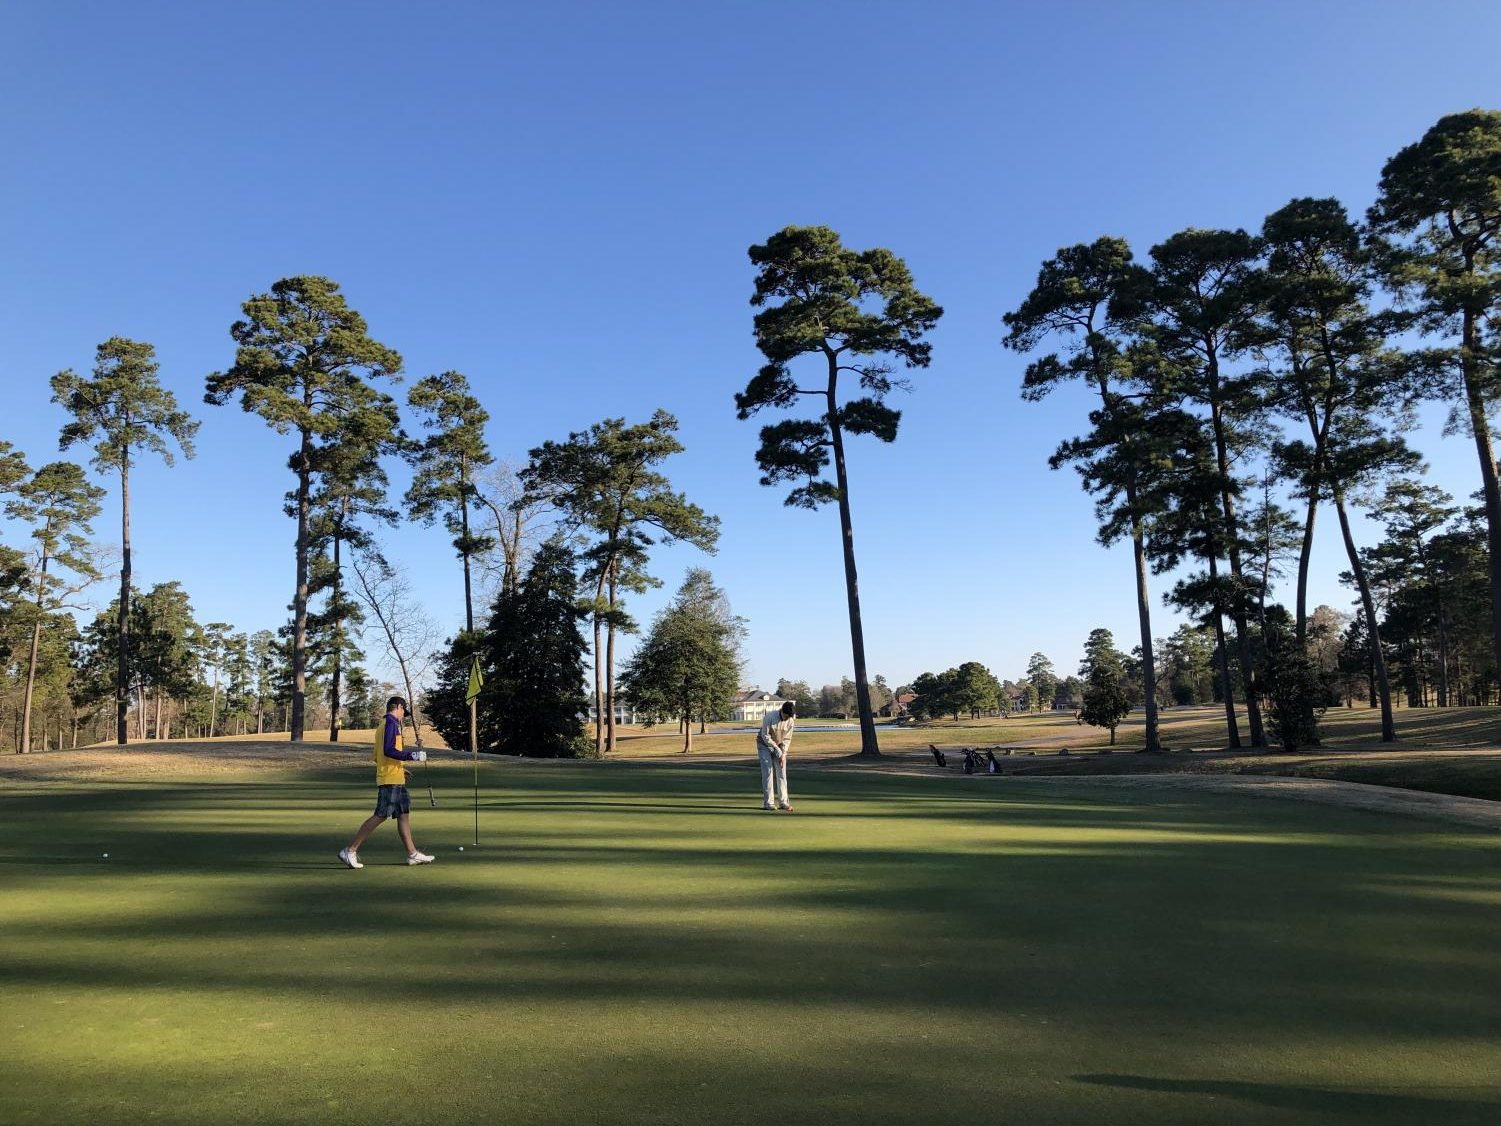 Senior Tristian Kelsey, and freshman Nikesh Nair walk on the 17th green at Augusta Pines Golf Course to judge where their puts will go.